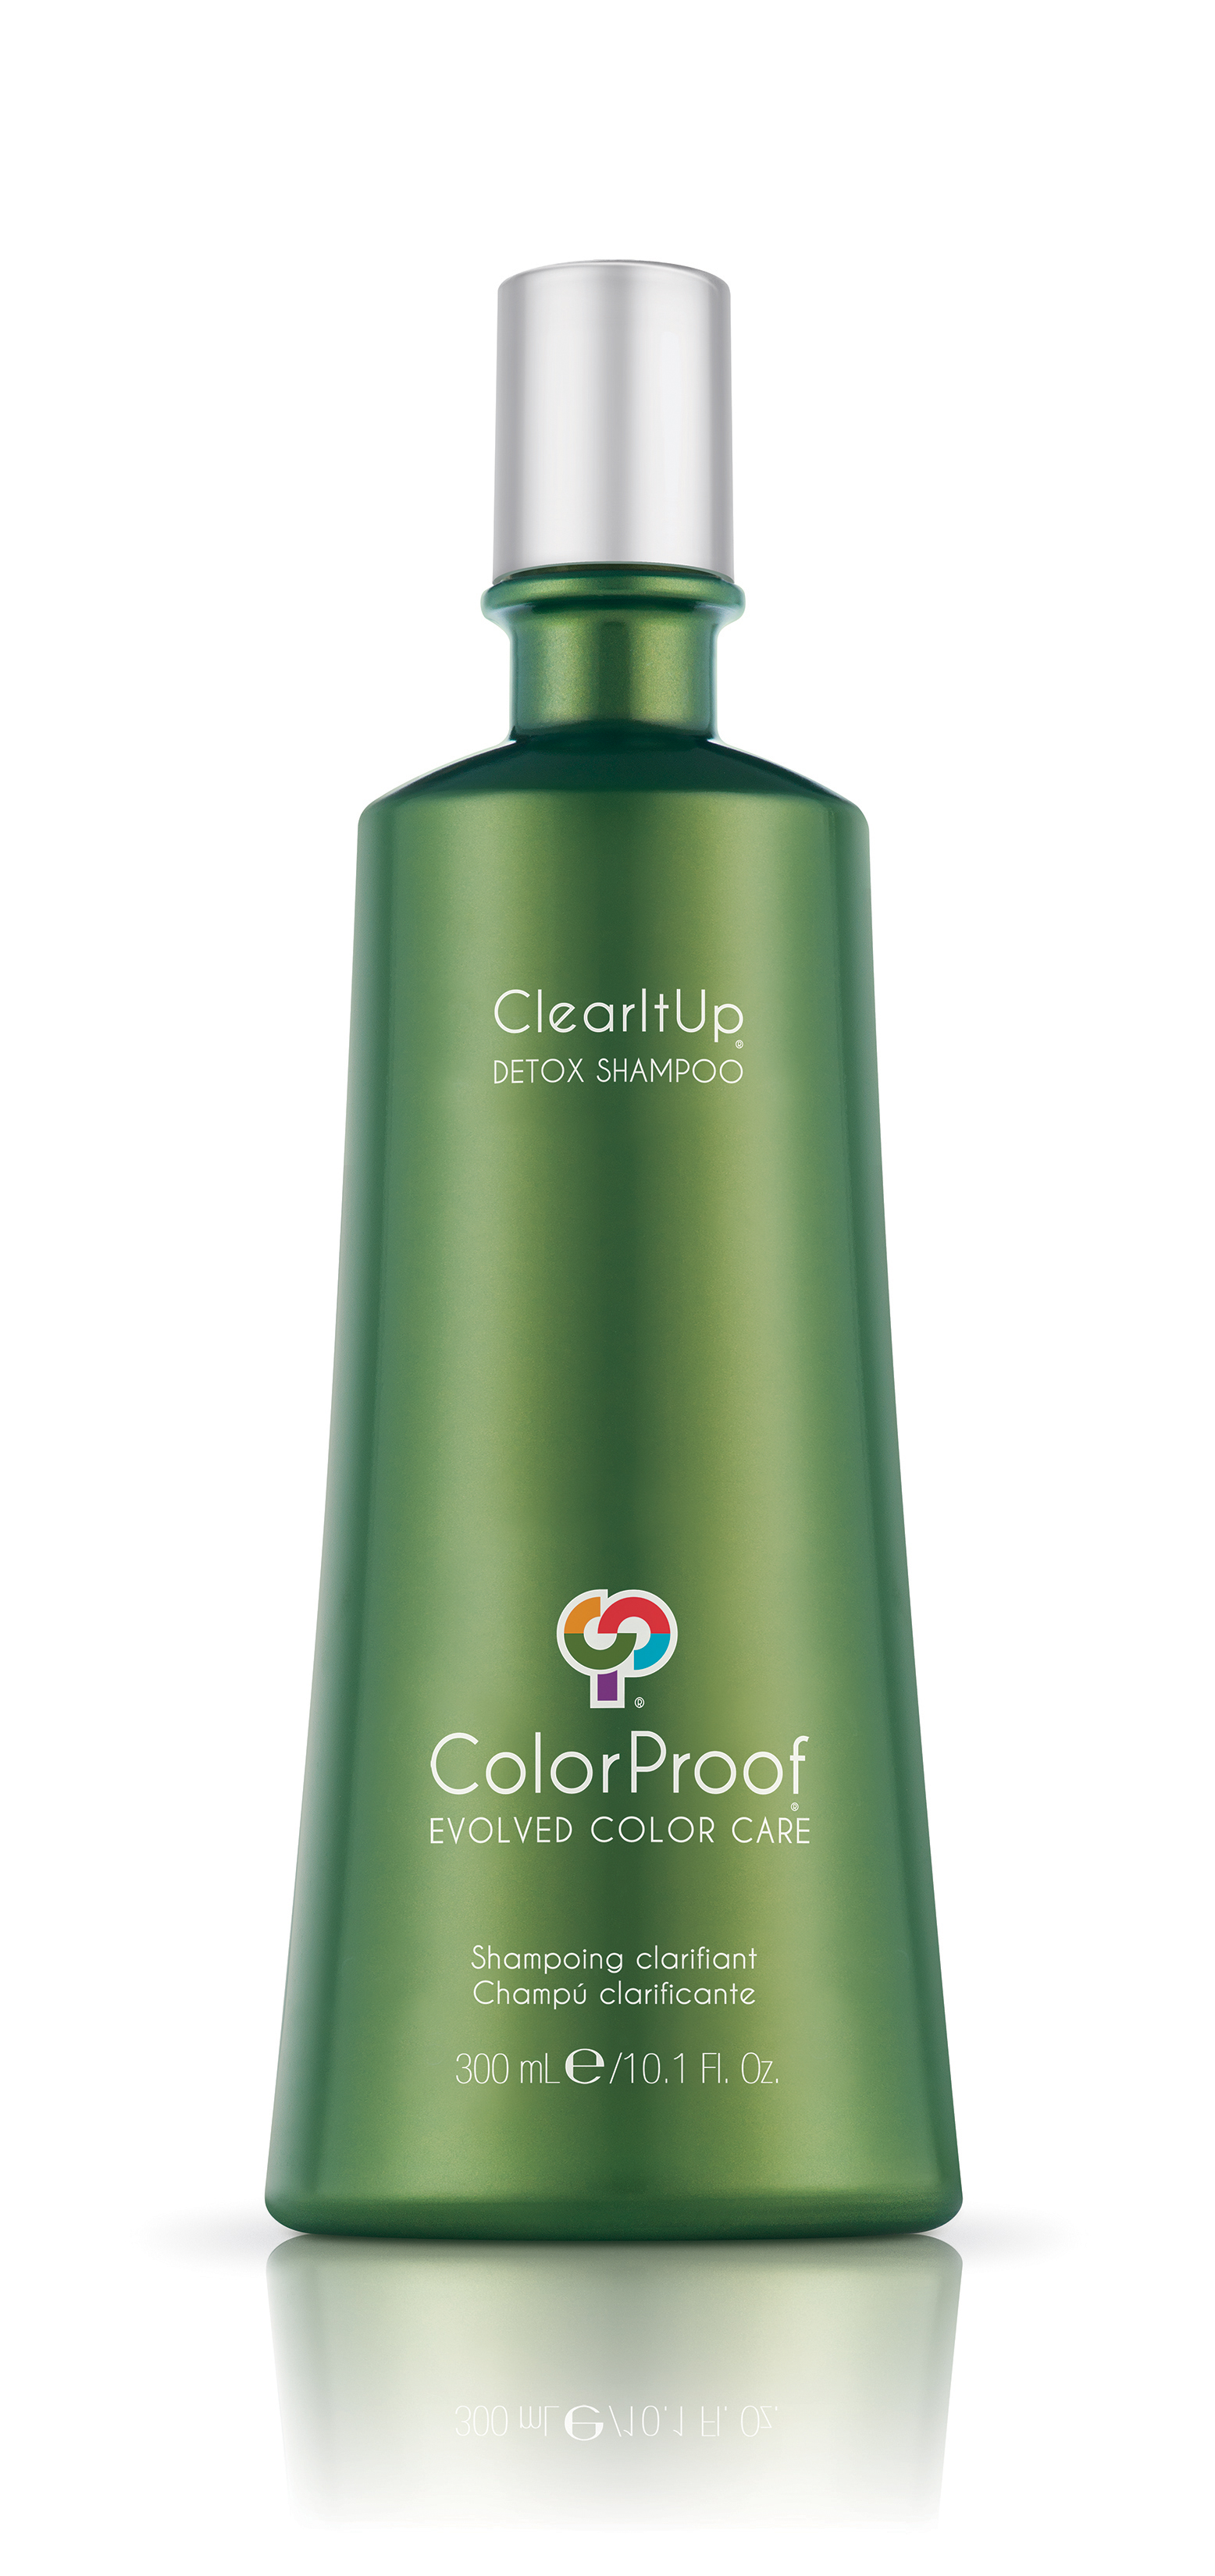 Shampoos that REALLY clean your hair without damaging it - HelloGiggles